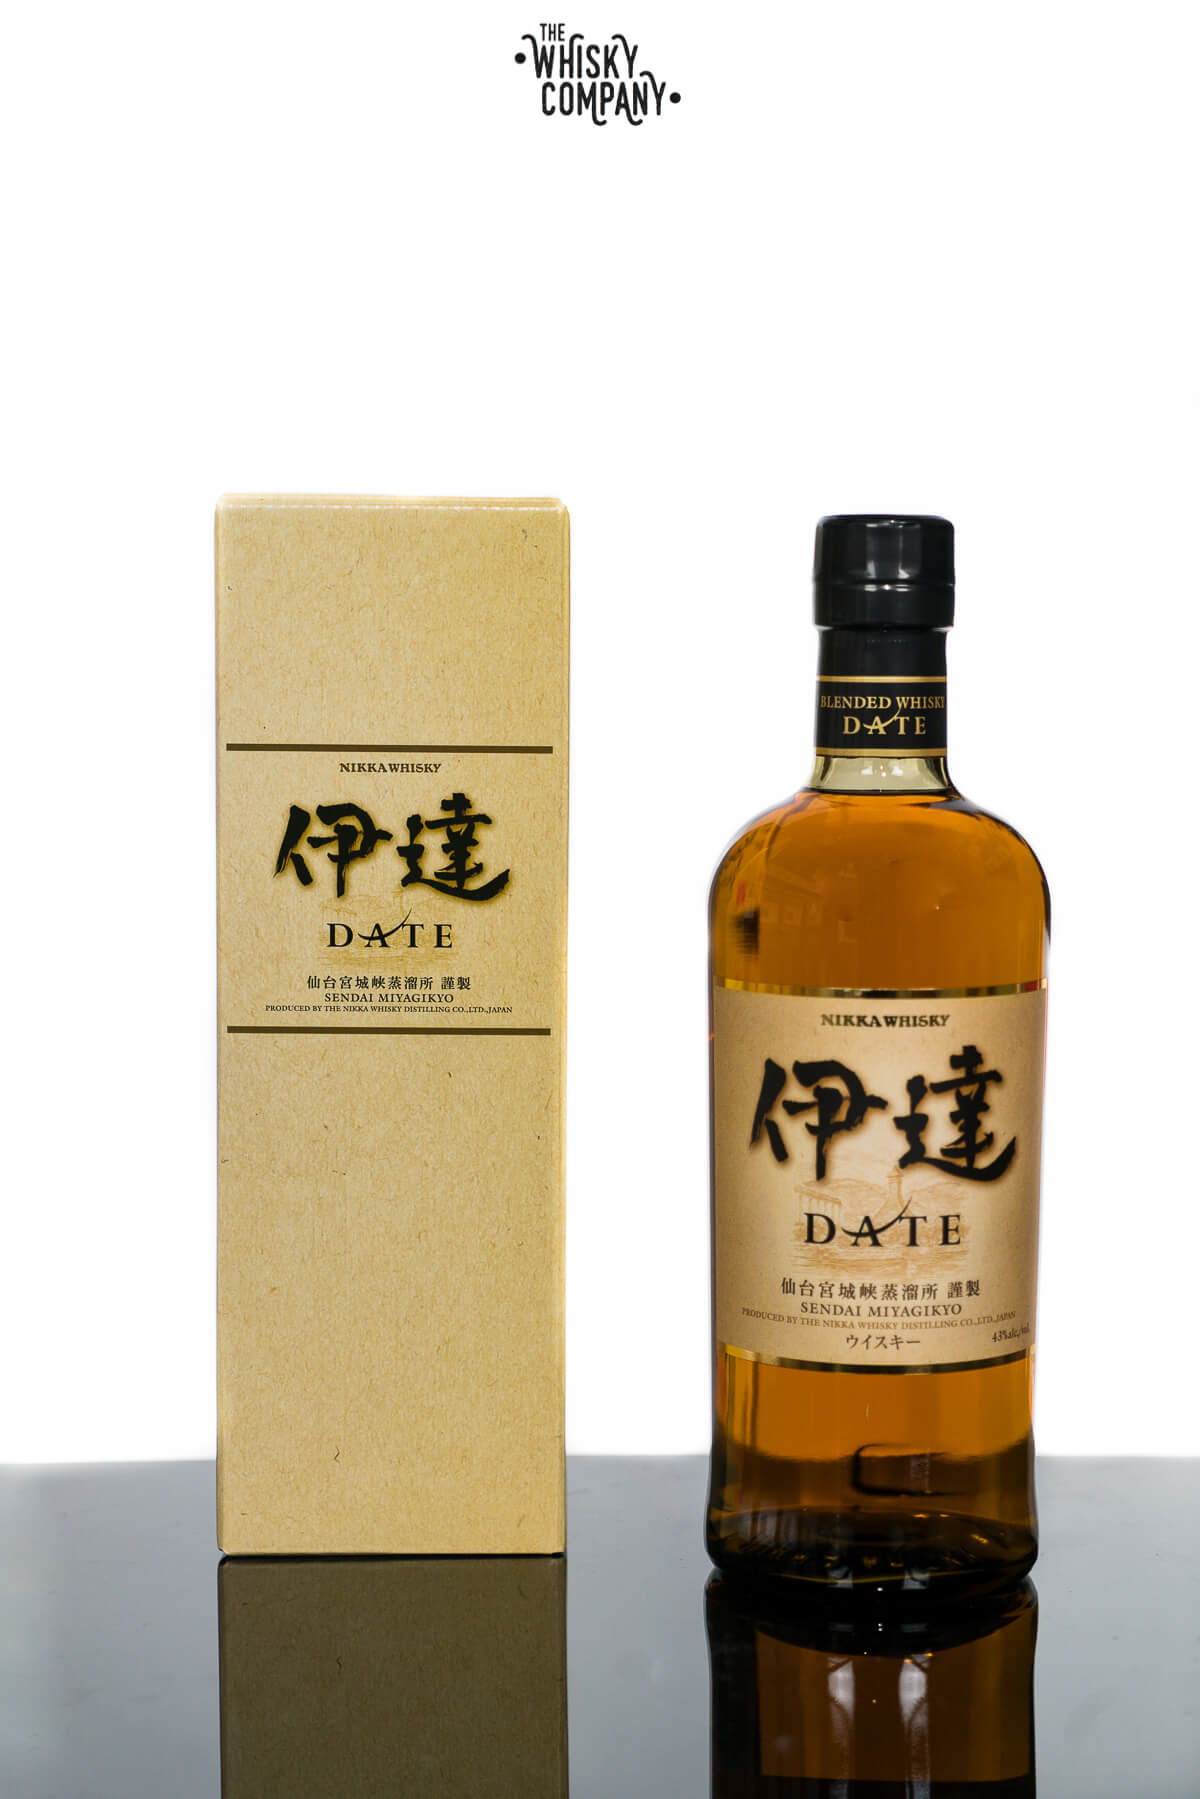 Nikka Date Japanese Blended Whisky (700ml)